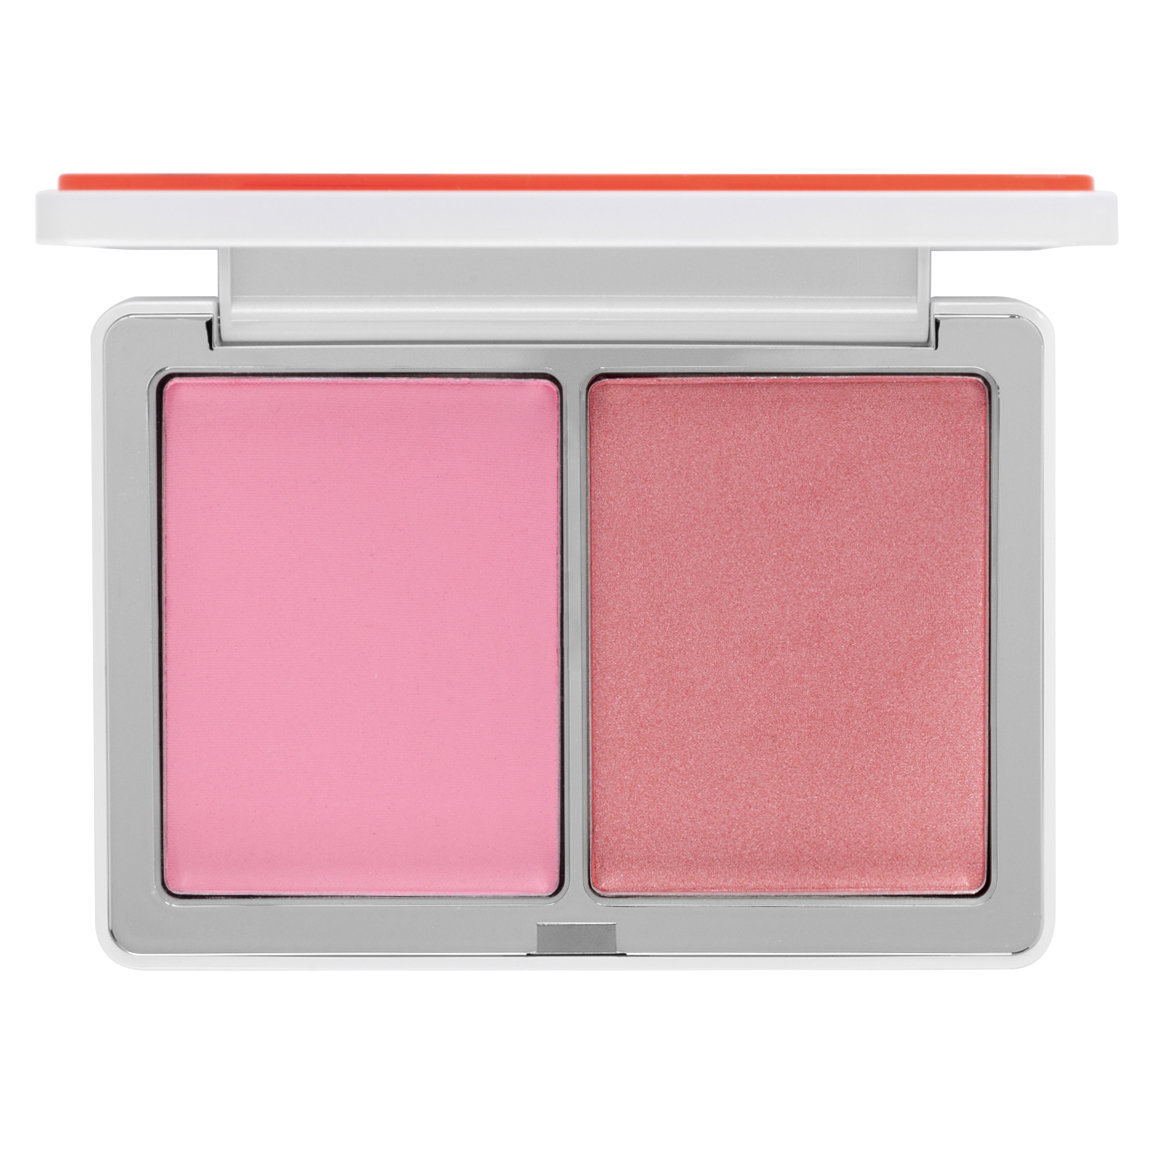 Natasha Denona Blush Duo 02 - Light Antique Rose product swatch.